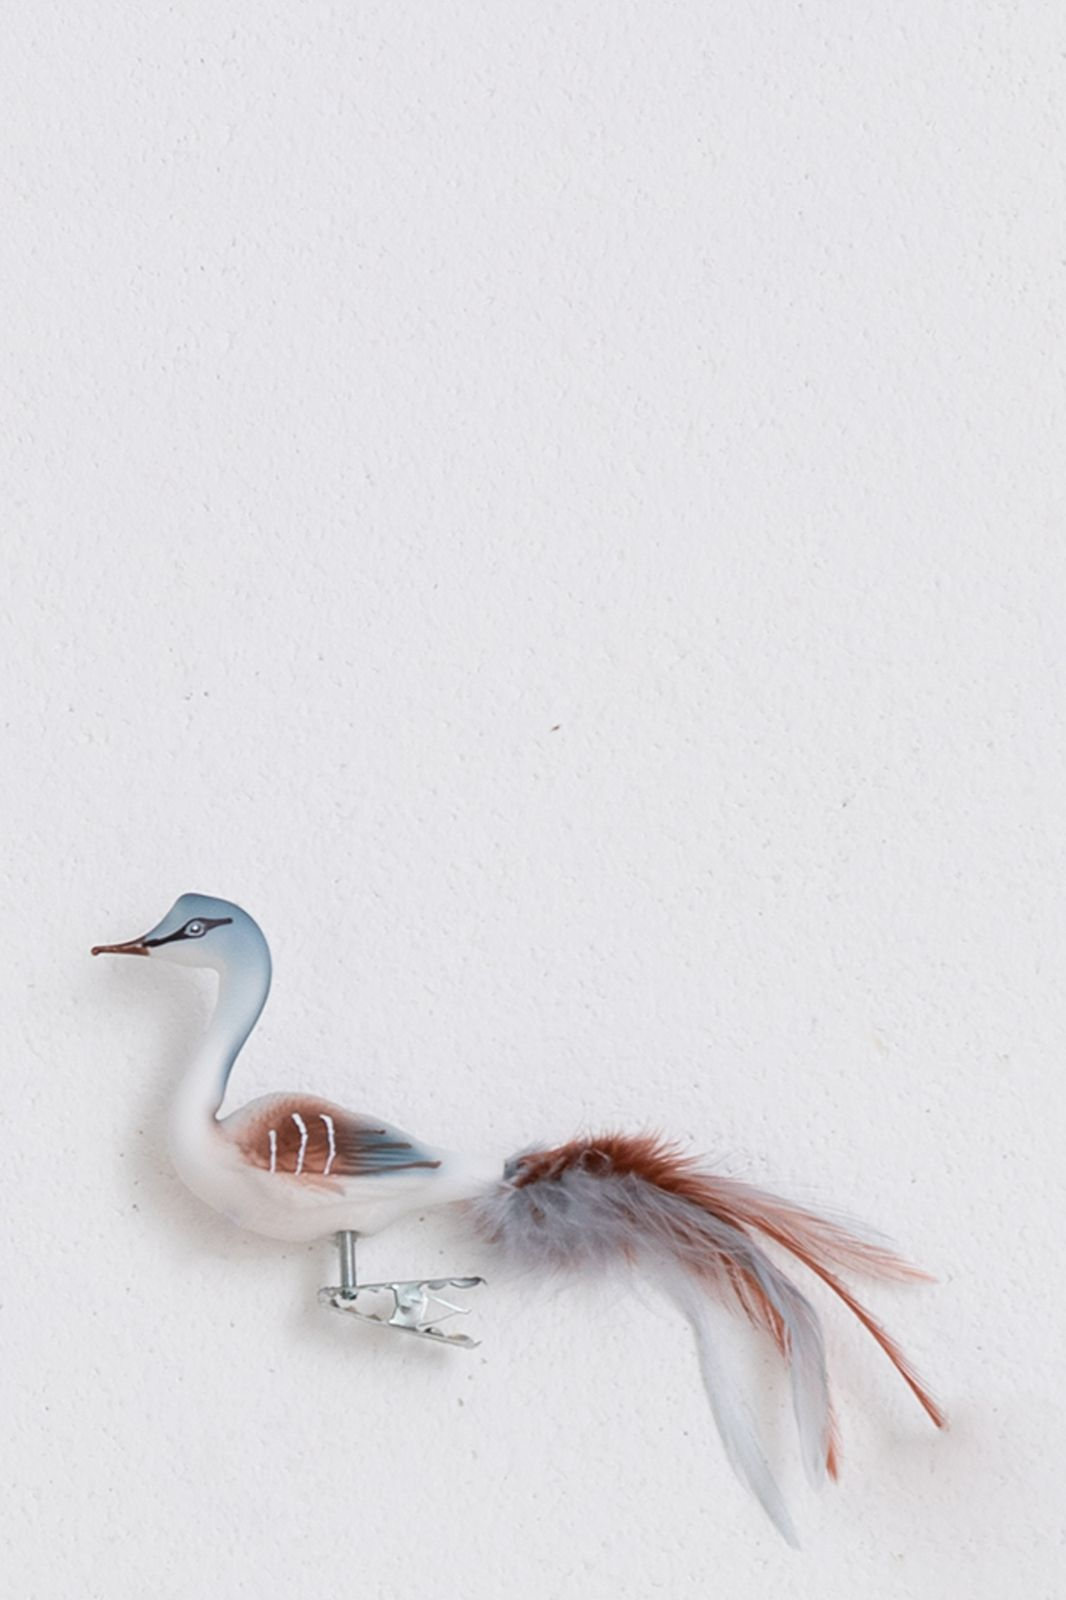 Kerst ornament ijsvogel - Homeland | Sissy-Boy